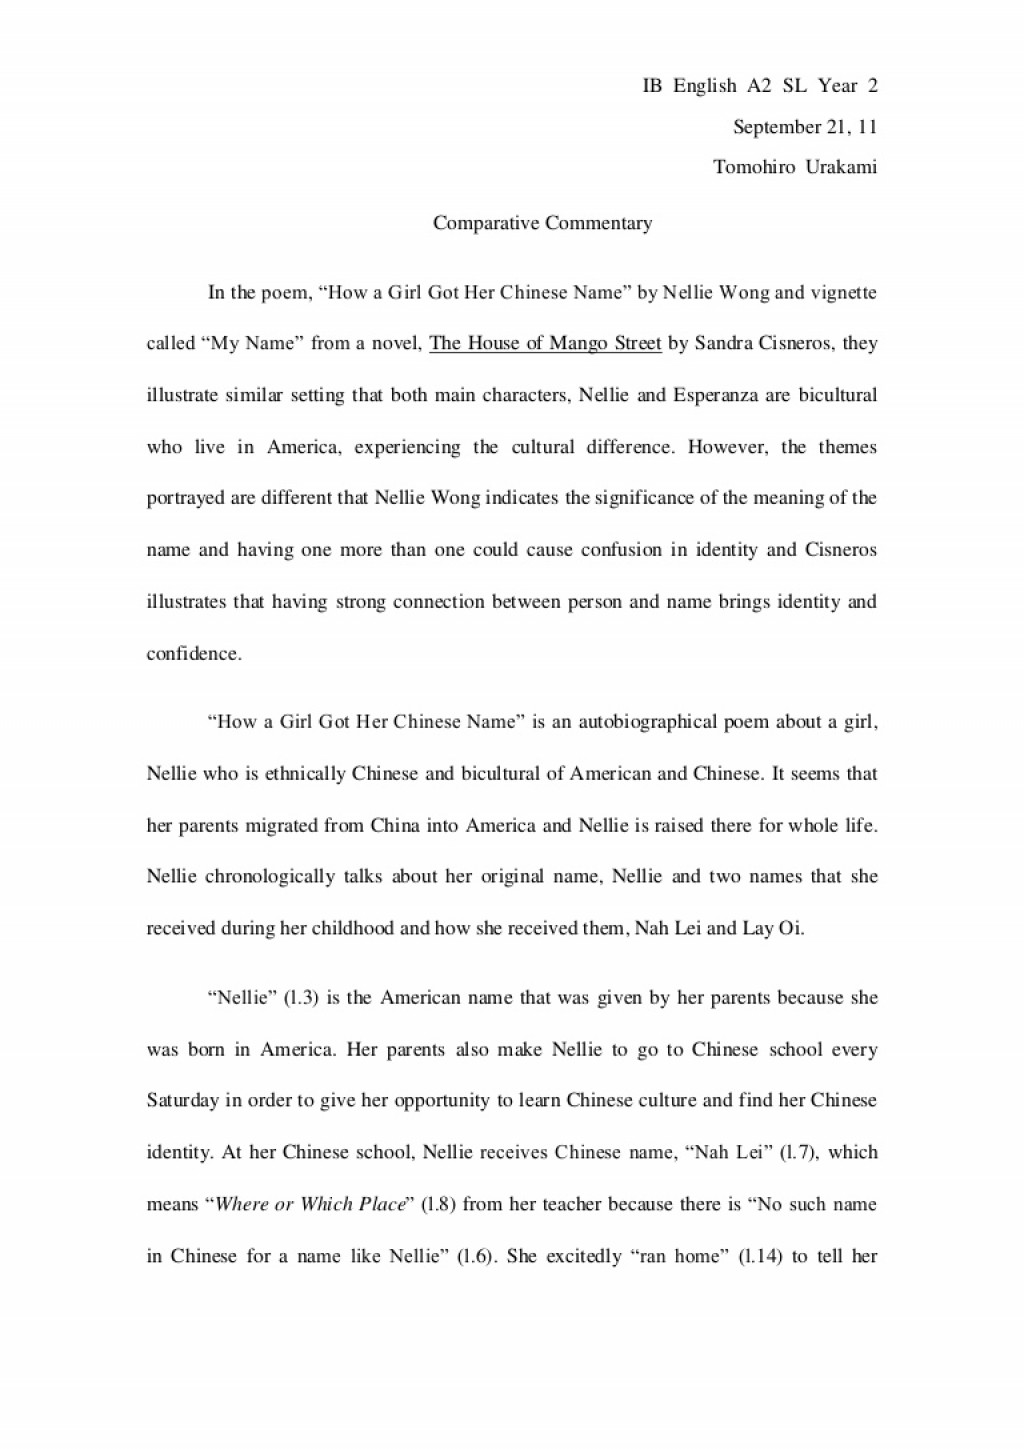 011 Essay Example Striking American Format Literature Topics Identity Titles Large